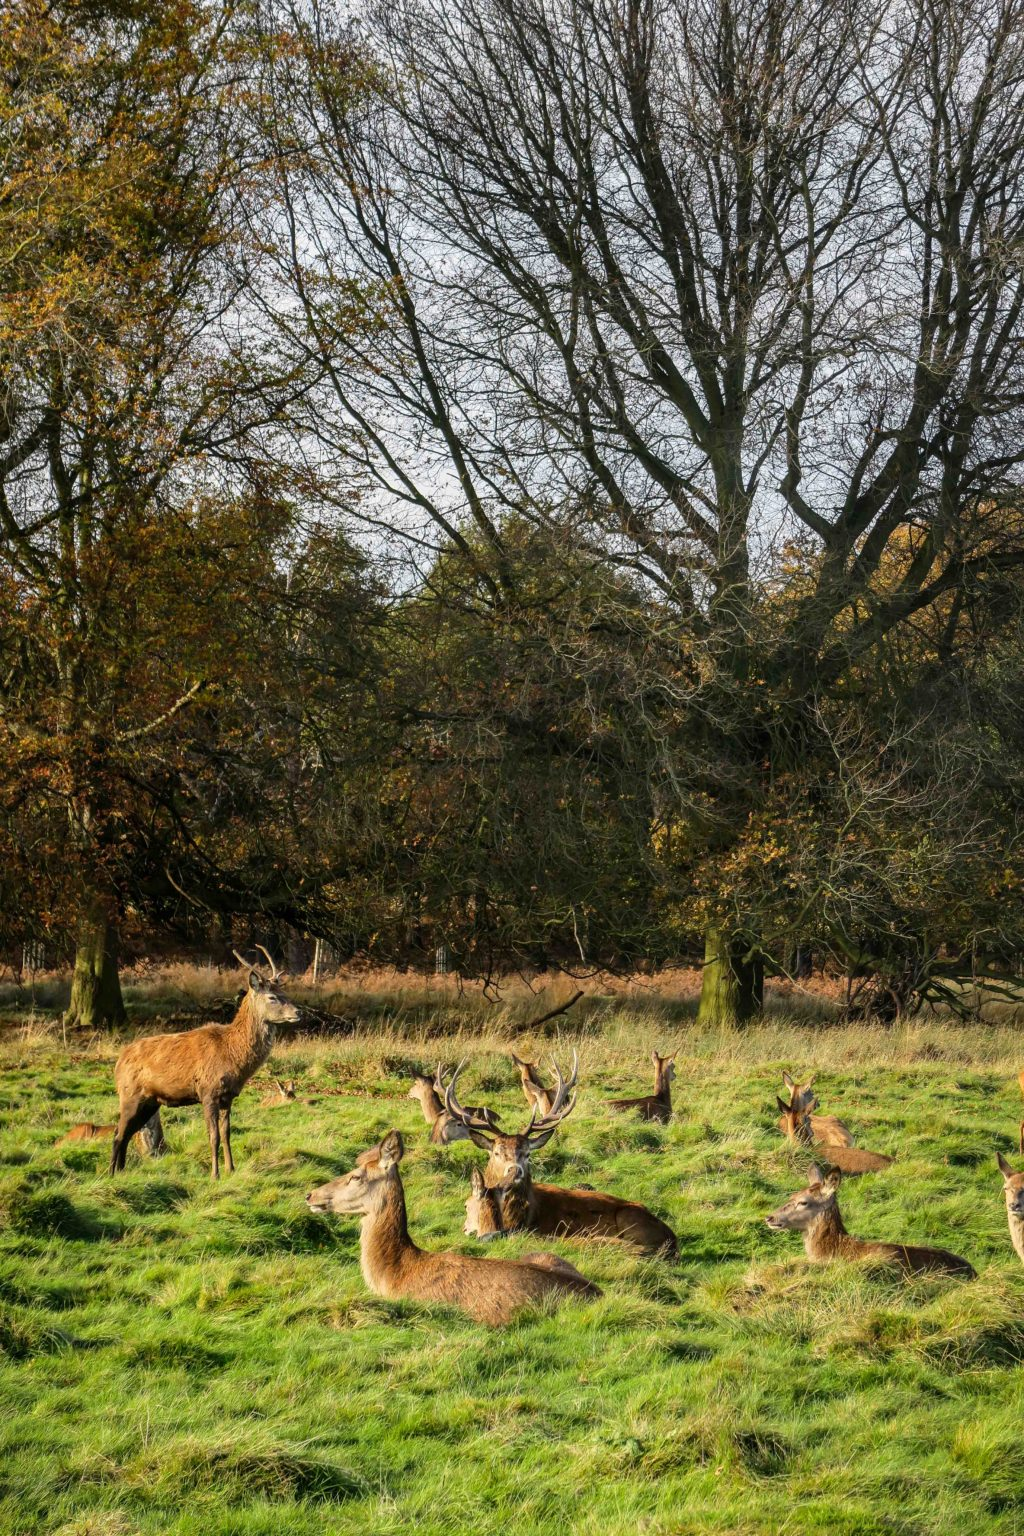 Richmond Park, London. Travel Diary & Blog by Rosie Andre (wildlife, nature, photo, photography, photographs, inspiration, wanderlust, autumn, deer, wild deer, wilderness, explore, discover, uk, london, england)